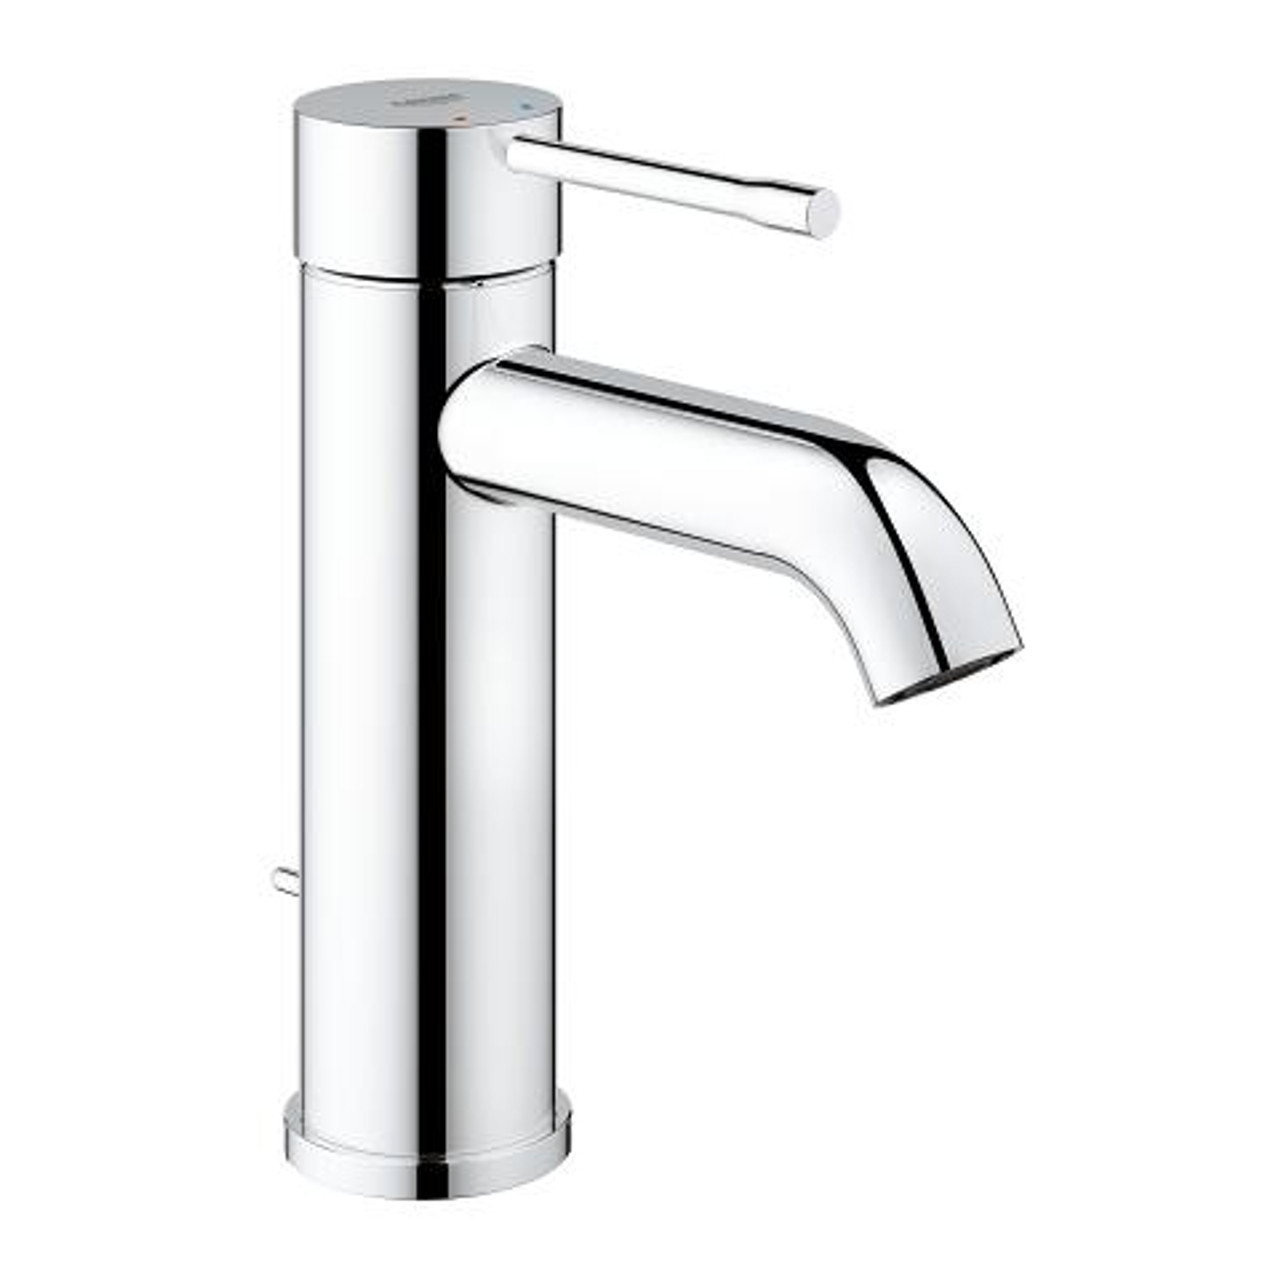 Bathroom Faucets.Grohe Essence Single Handle Bathroom Faucet S Size Chrome Finish